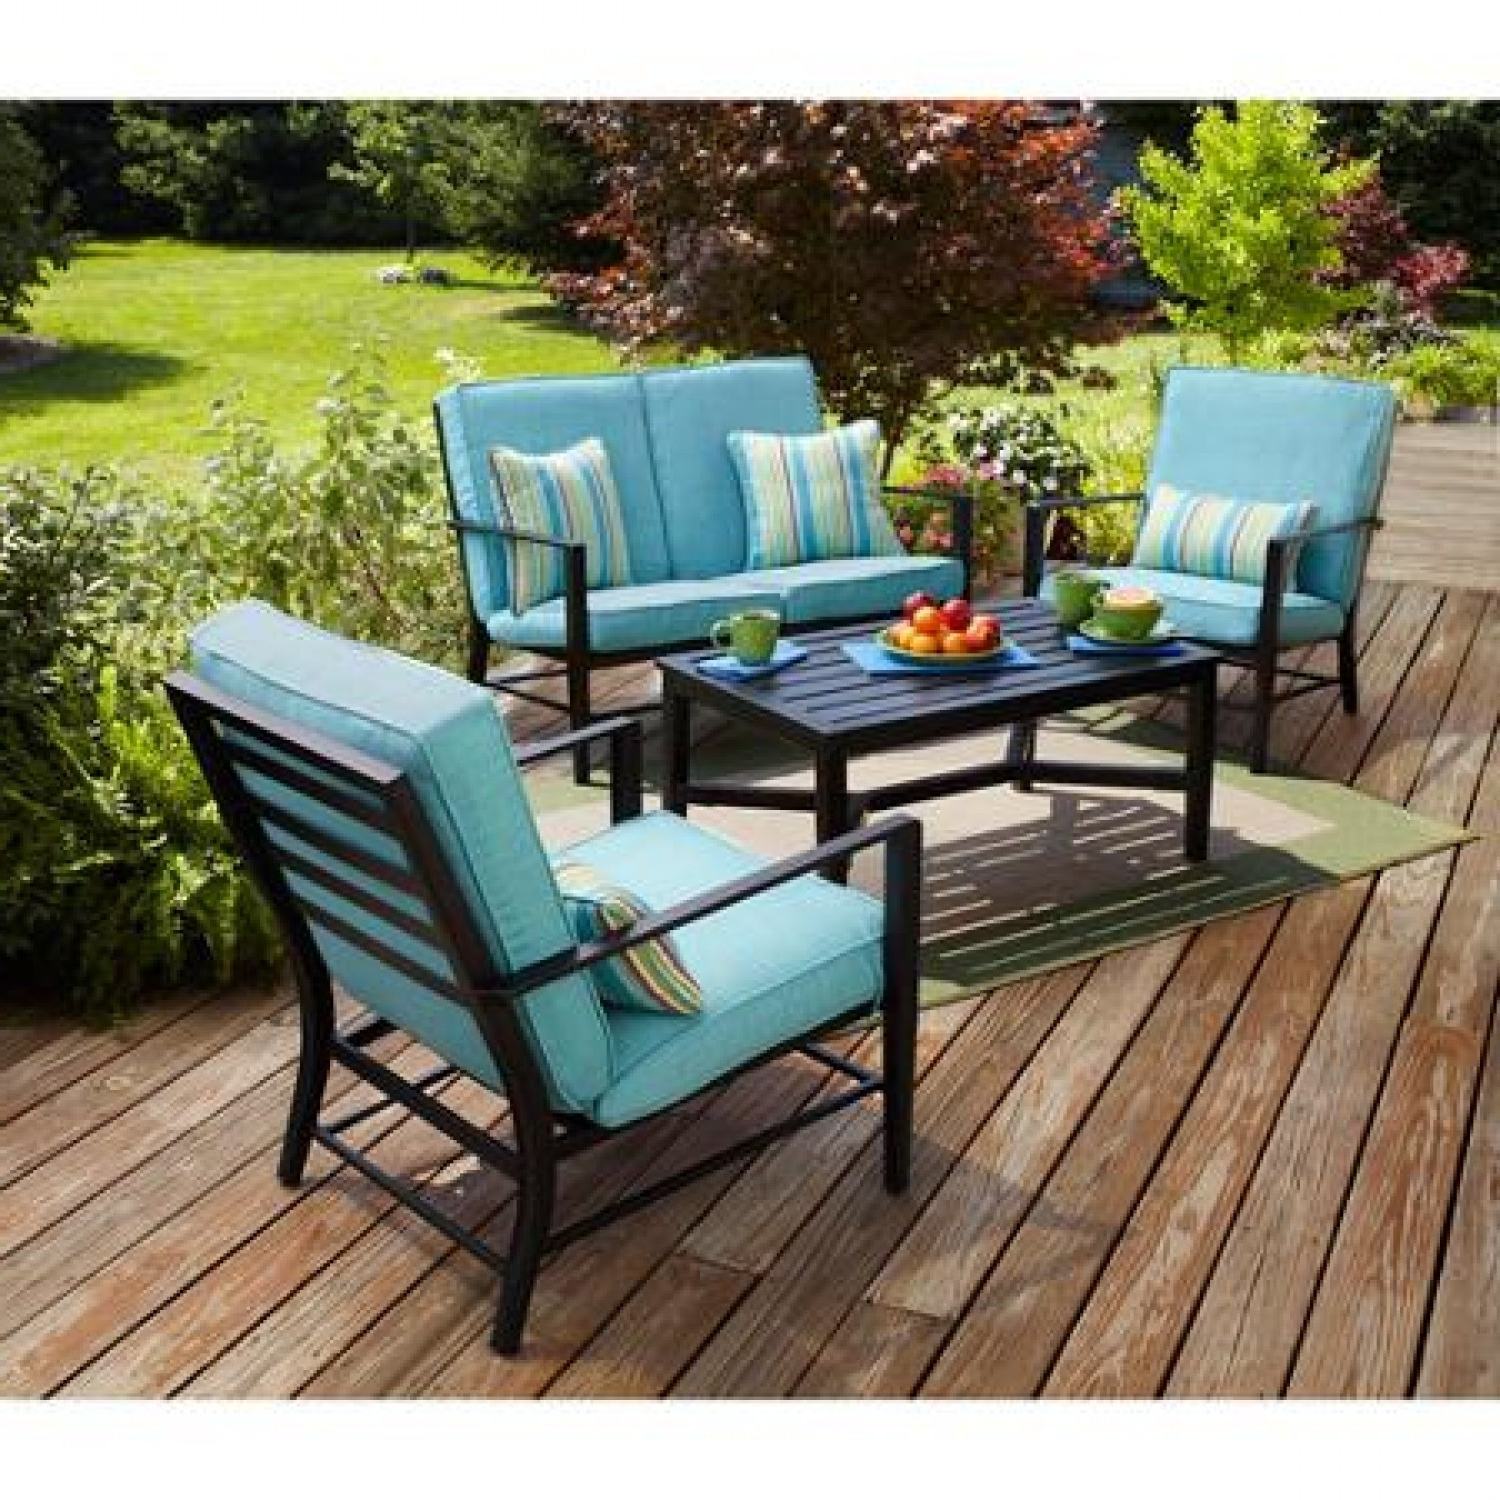 Metal Patio Conversation Sets With 2018 Metal Patio Conversation Sets Fire Pit Table And Chairs Patio (View 5 of 20)